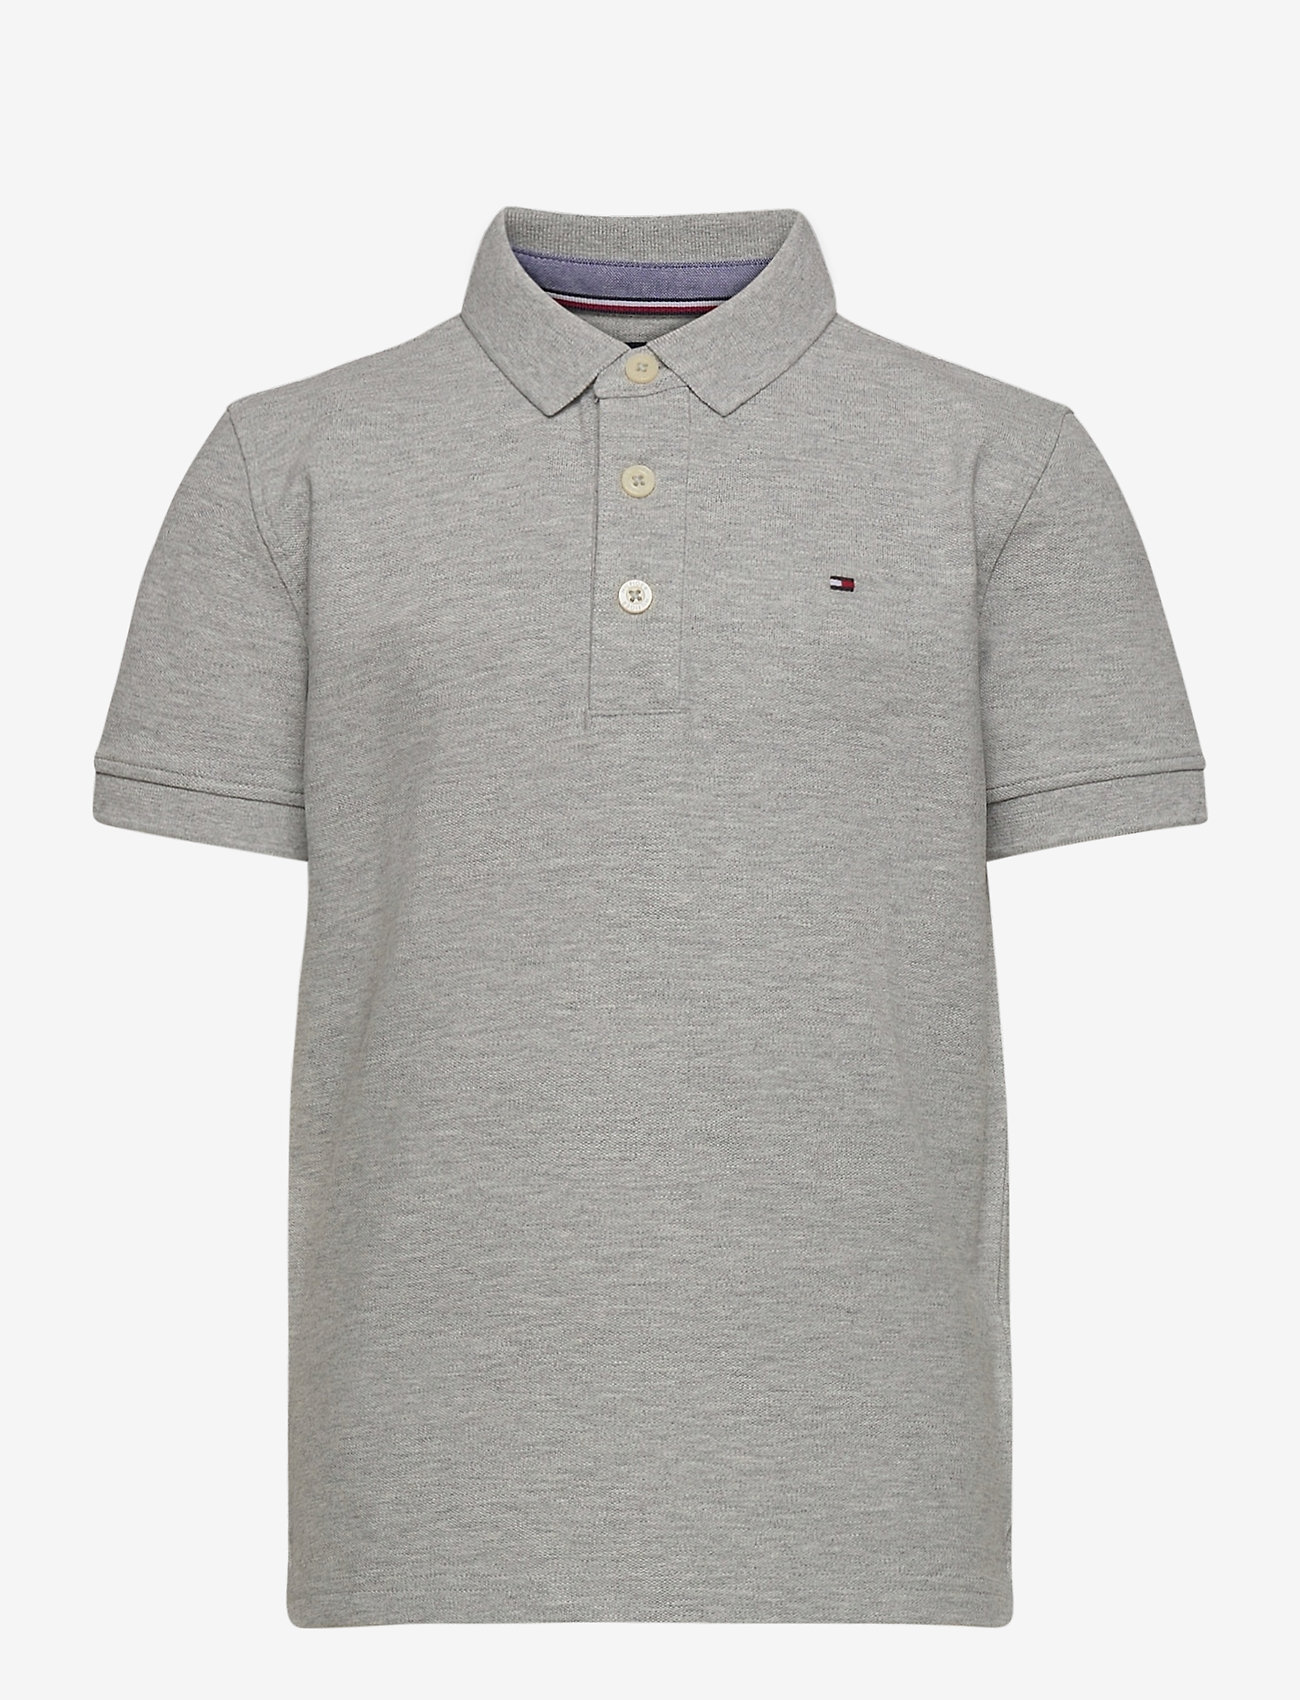 Tommy Hilfiger - BOYS TOMMY POLO S/S - polo shirts - grey heather - 0